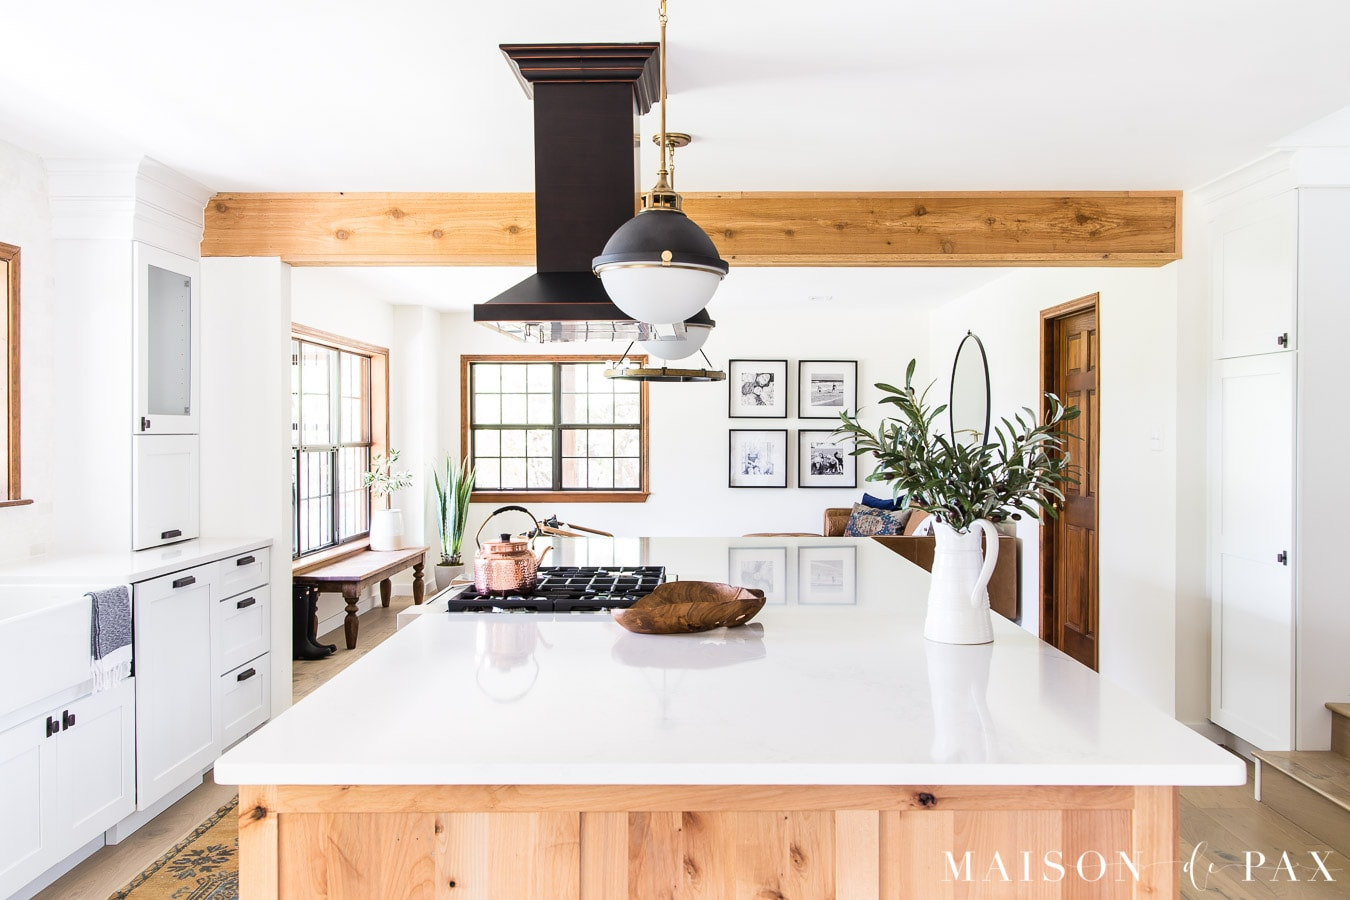 Mid-century modern kitchen with wood beams - Maison de Pax